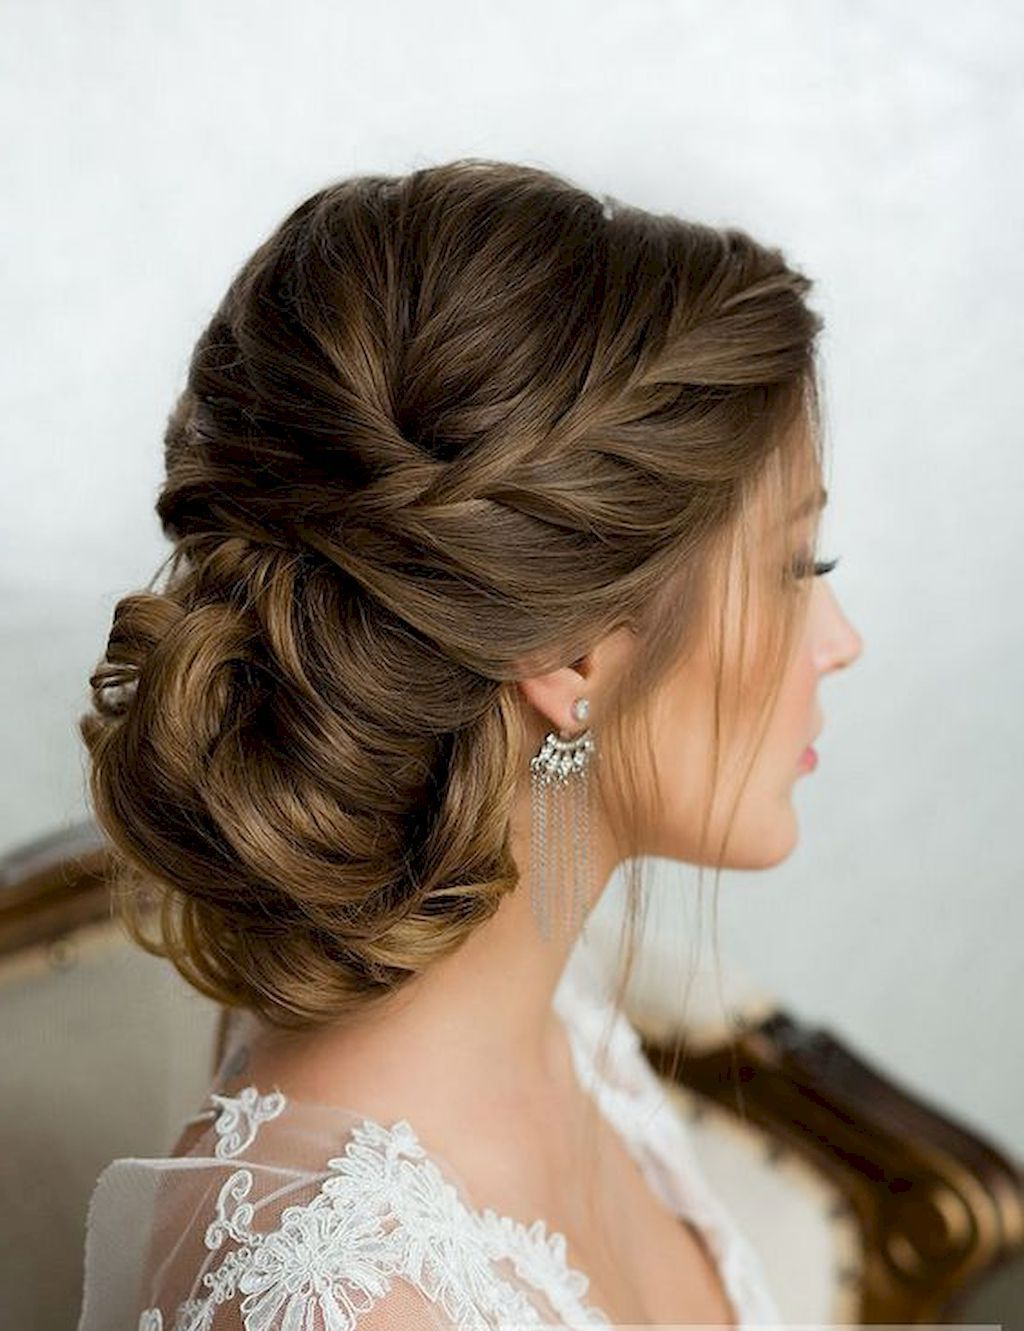 23 Bridal Wedding Hairstyles For Long Hair That Will Inspire (View 2 of 20)